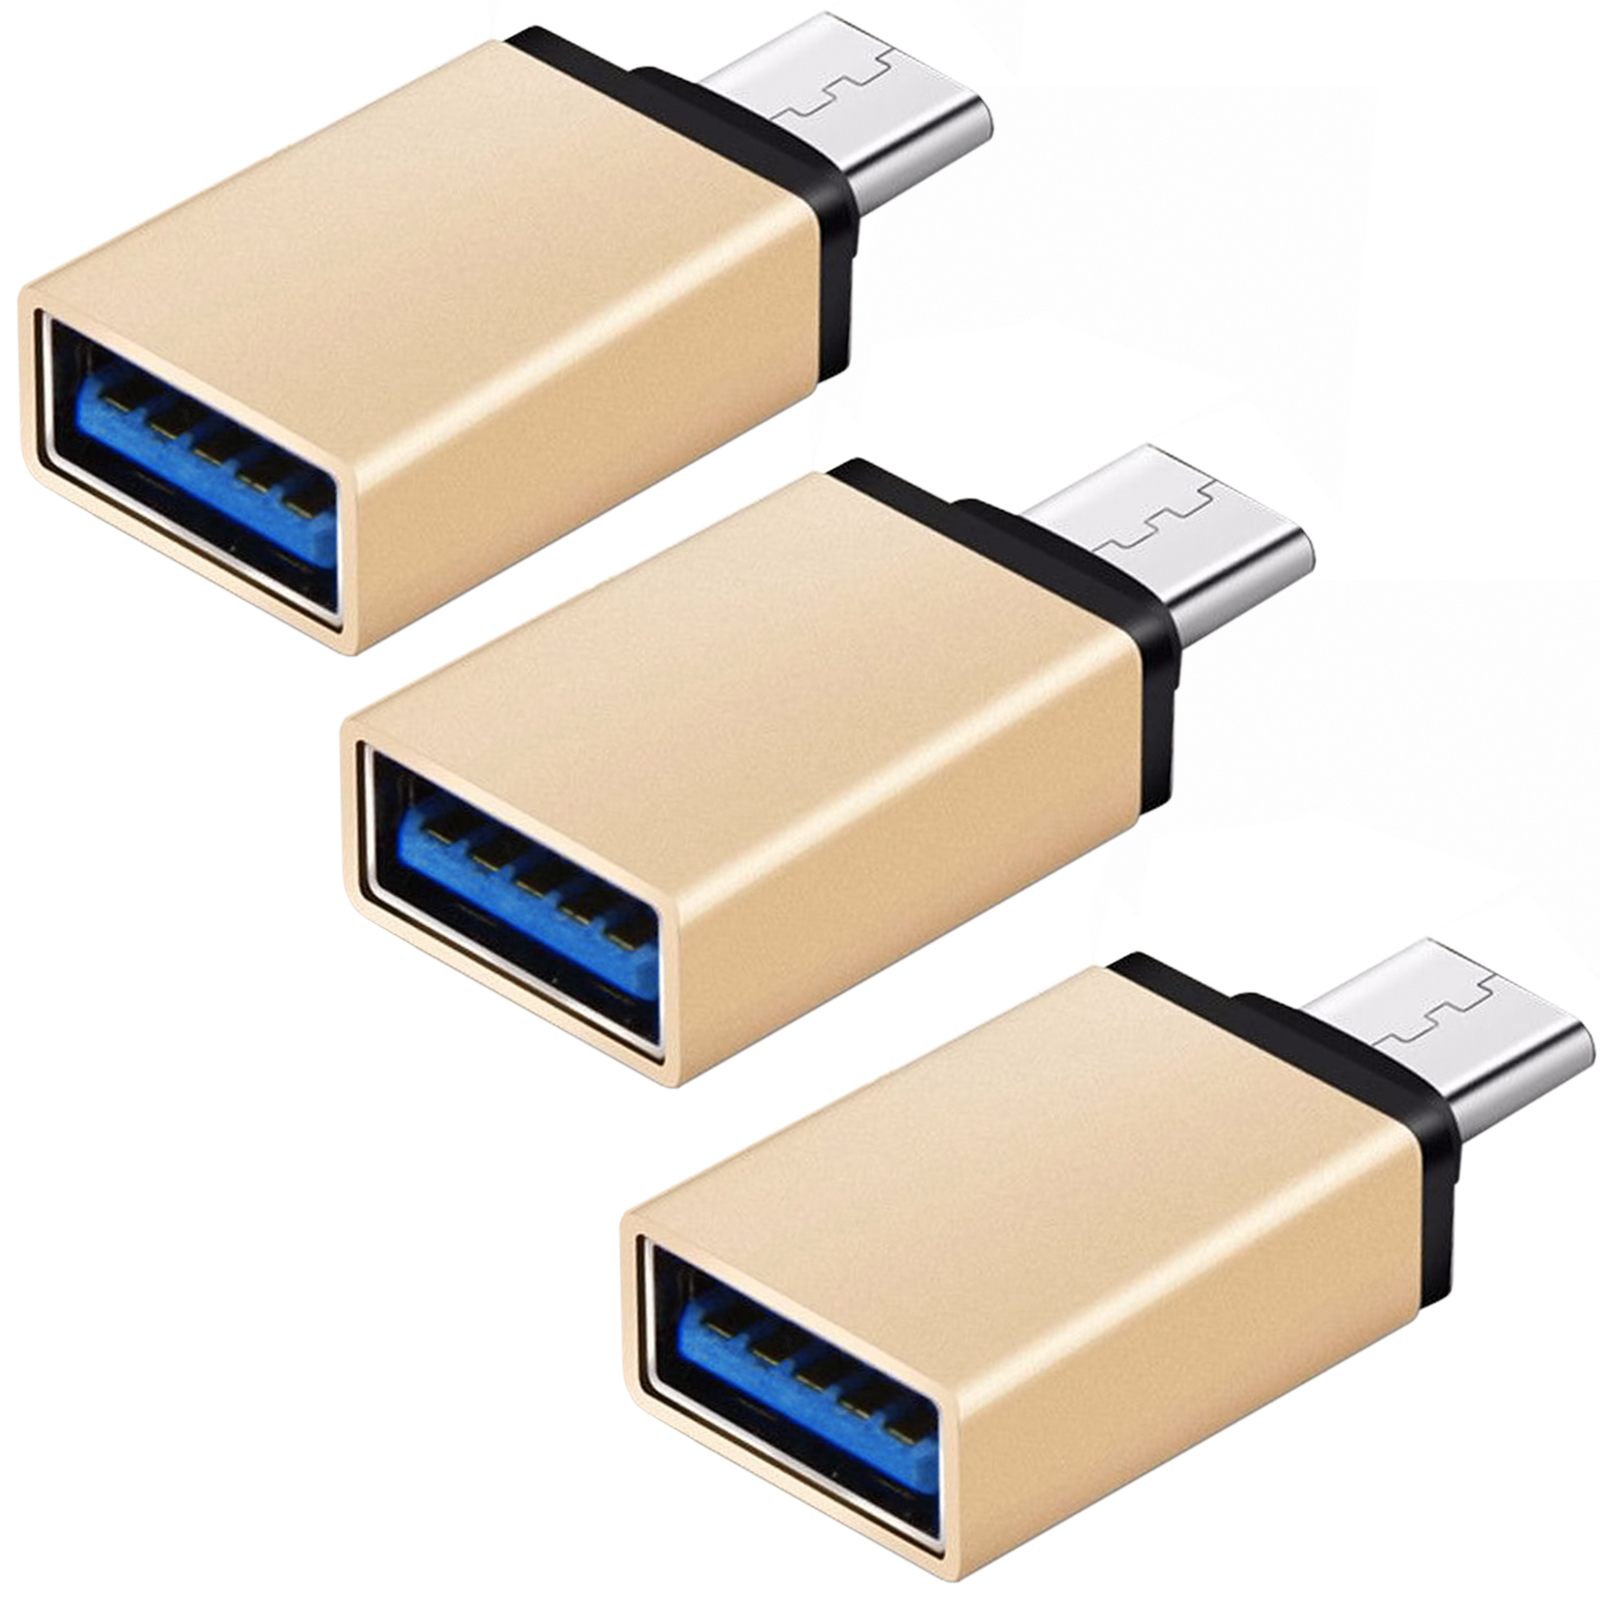 FREEDOMTECH USB C to USB 3.0 OTG Adapter (3 Pack), Thunderbolt 3 Adapter For MacBook Pro, Chromebook, Pixelbook, Microsoft Surface Go, Galaxy S8 S9 Plus Note 8 9, LG V40 G7 G6 Thinq,Google Pixel Slate